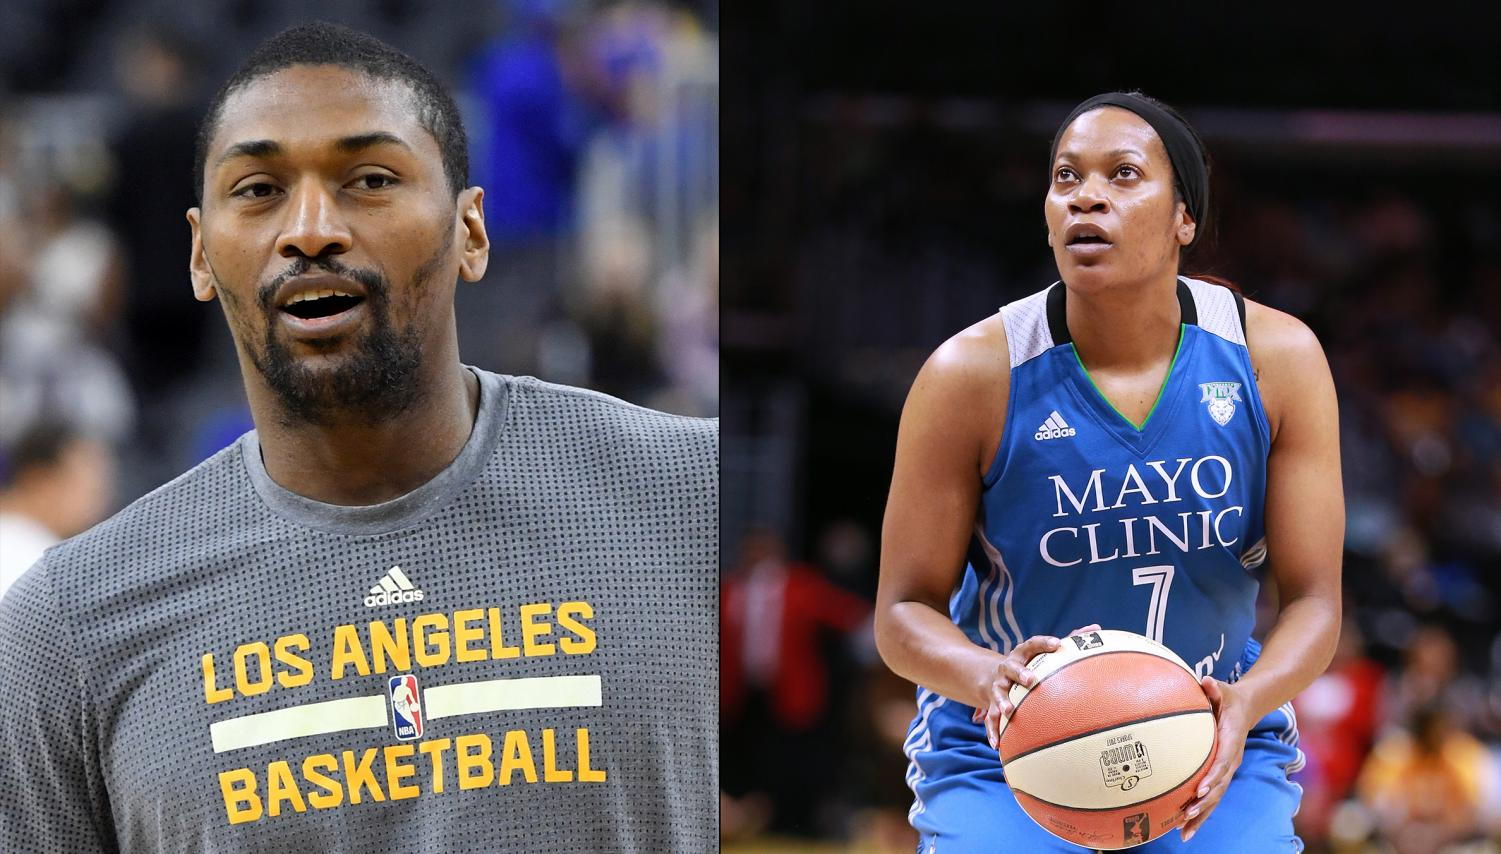 Metta World Peace of the Los Angeles Lakers (left) and Jia Perkins of the Minnesota Lynx shown side-by-side.